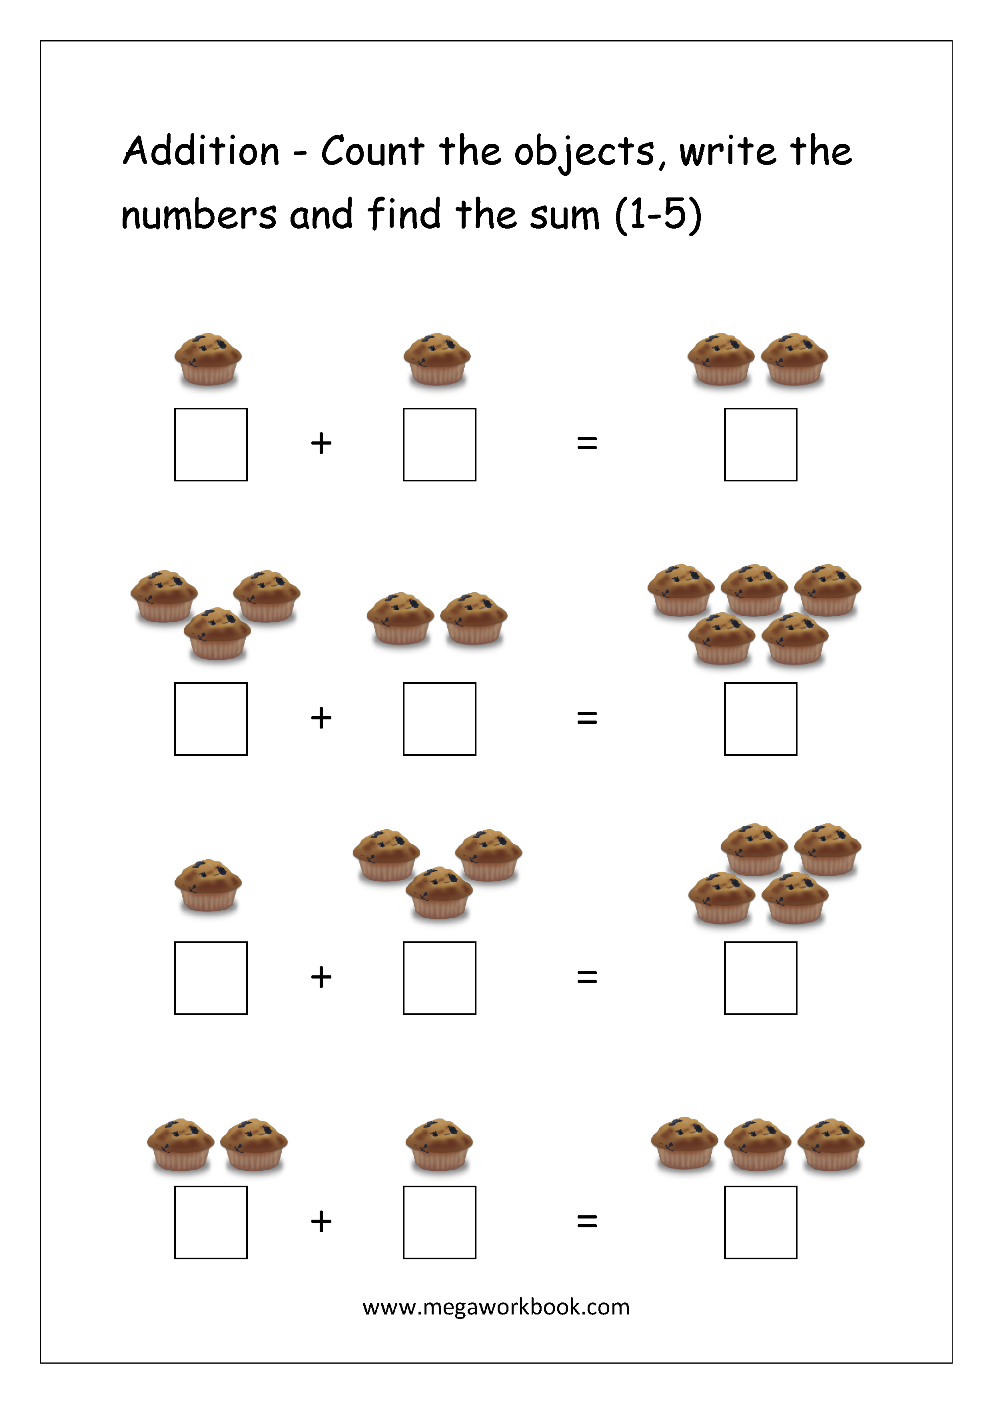 free printable number addition worksheets 1 10 for kindergarten and grade 1 addition on. Black Bedroom Furniture Sets. Home Design Ideas